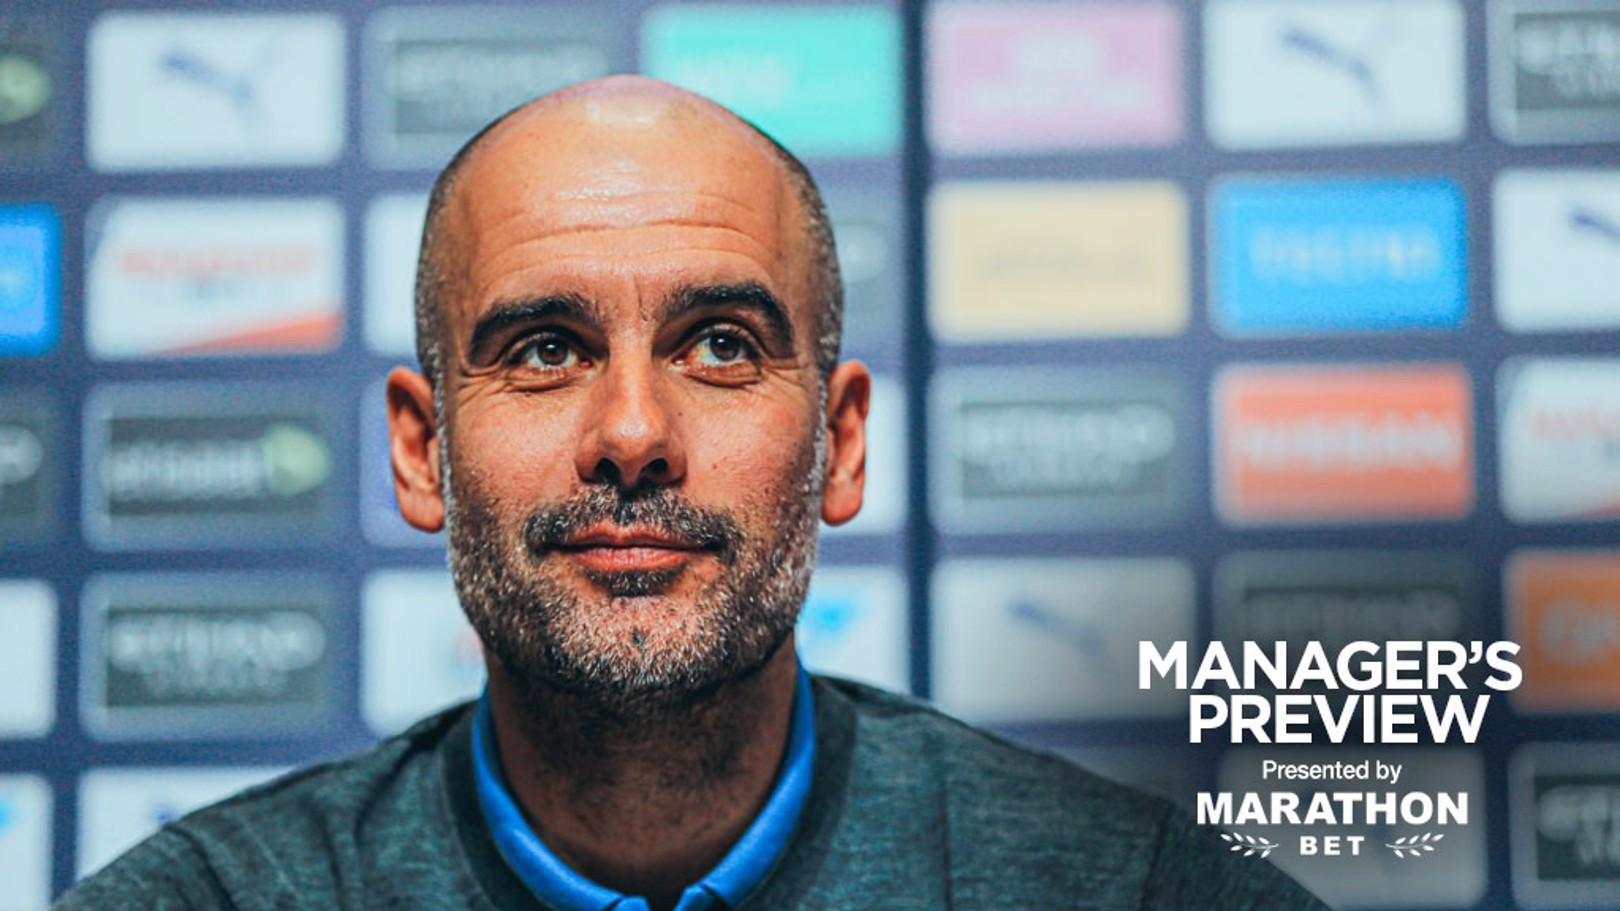 PREVIEW: Pep Guardiola speaks to the media ahead of City's Carabao Cup semi-final against Manchester United.